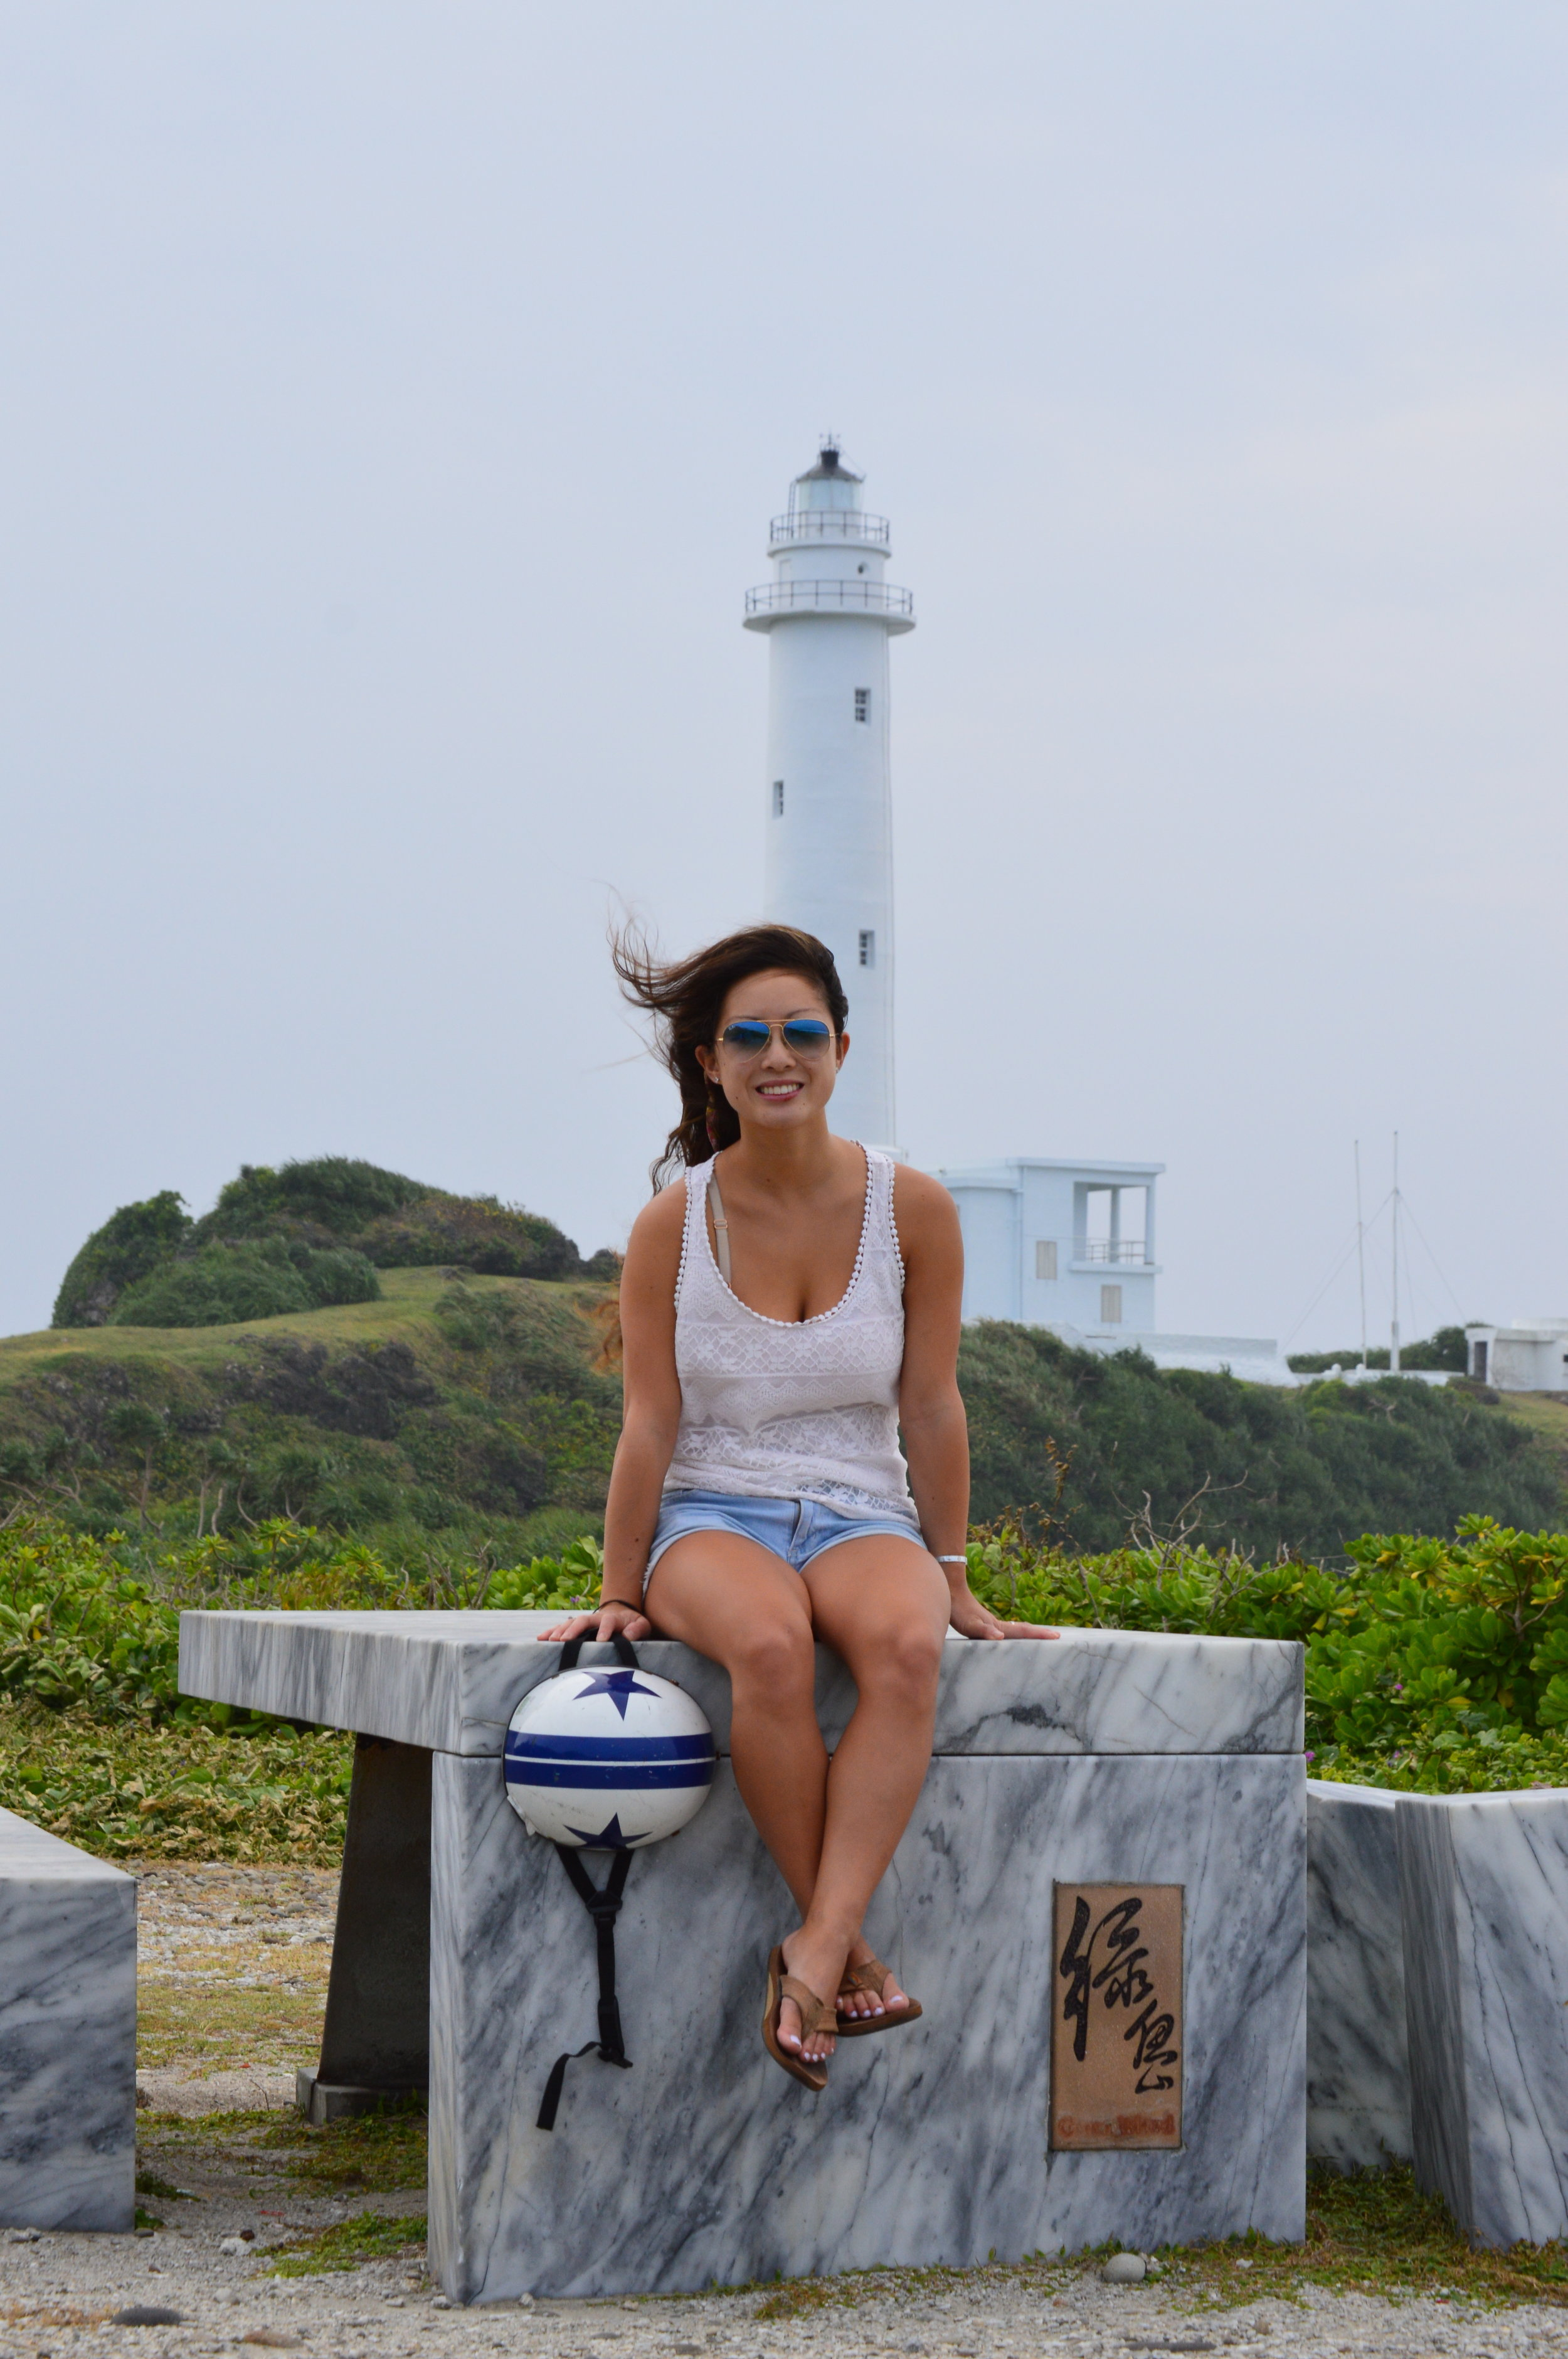 First day on the island (Monday) was cloudy and super windy. Lighthouse was closed.